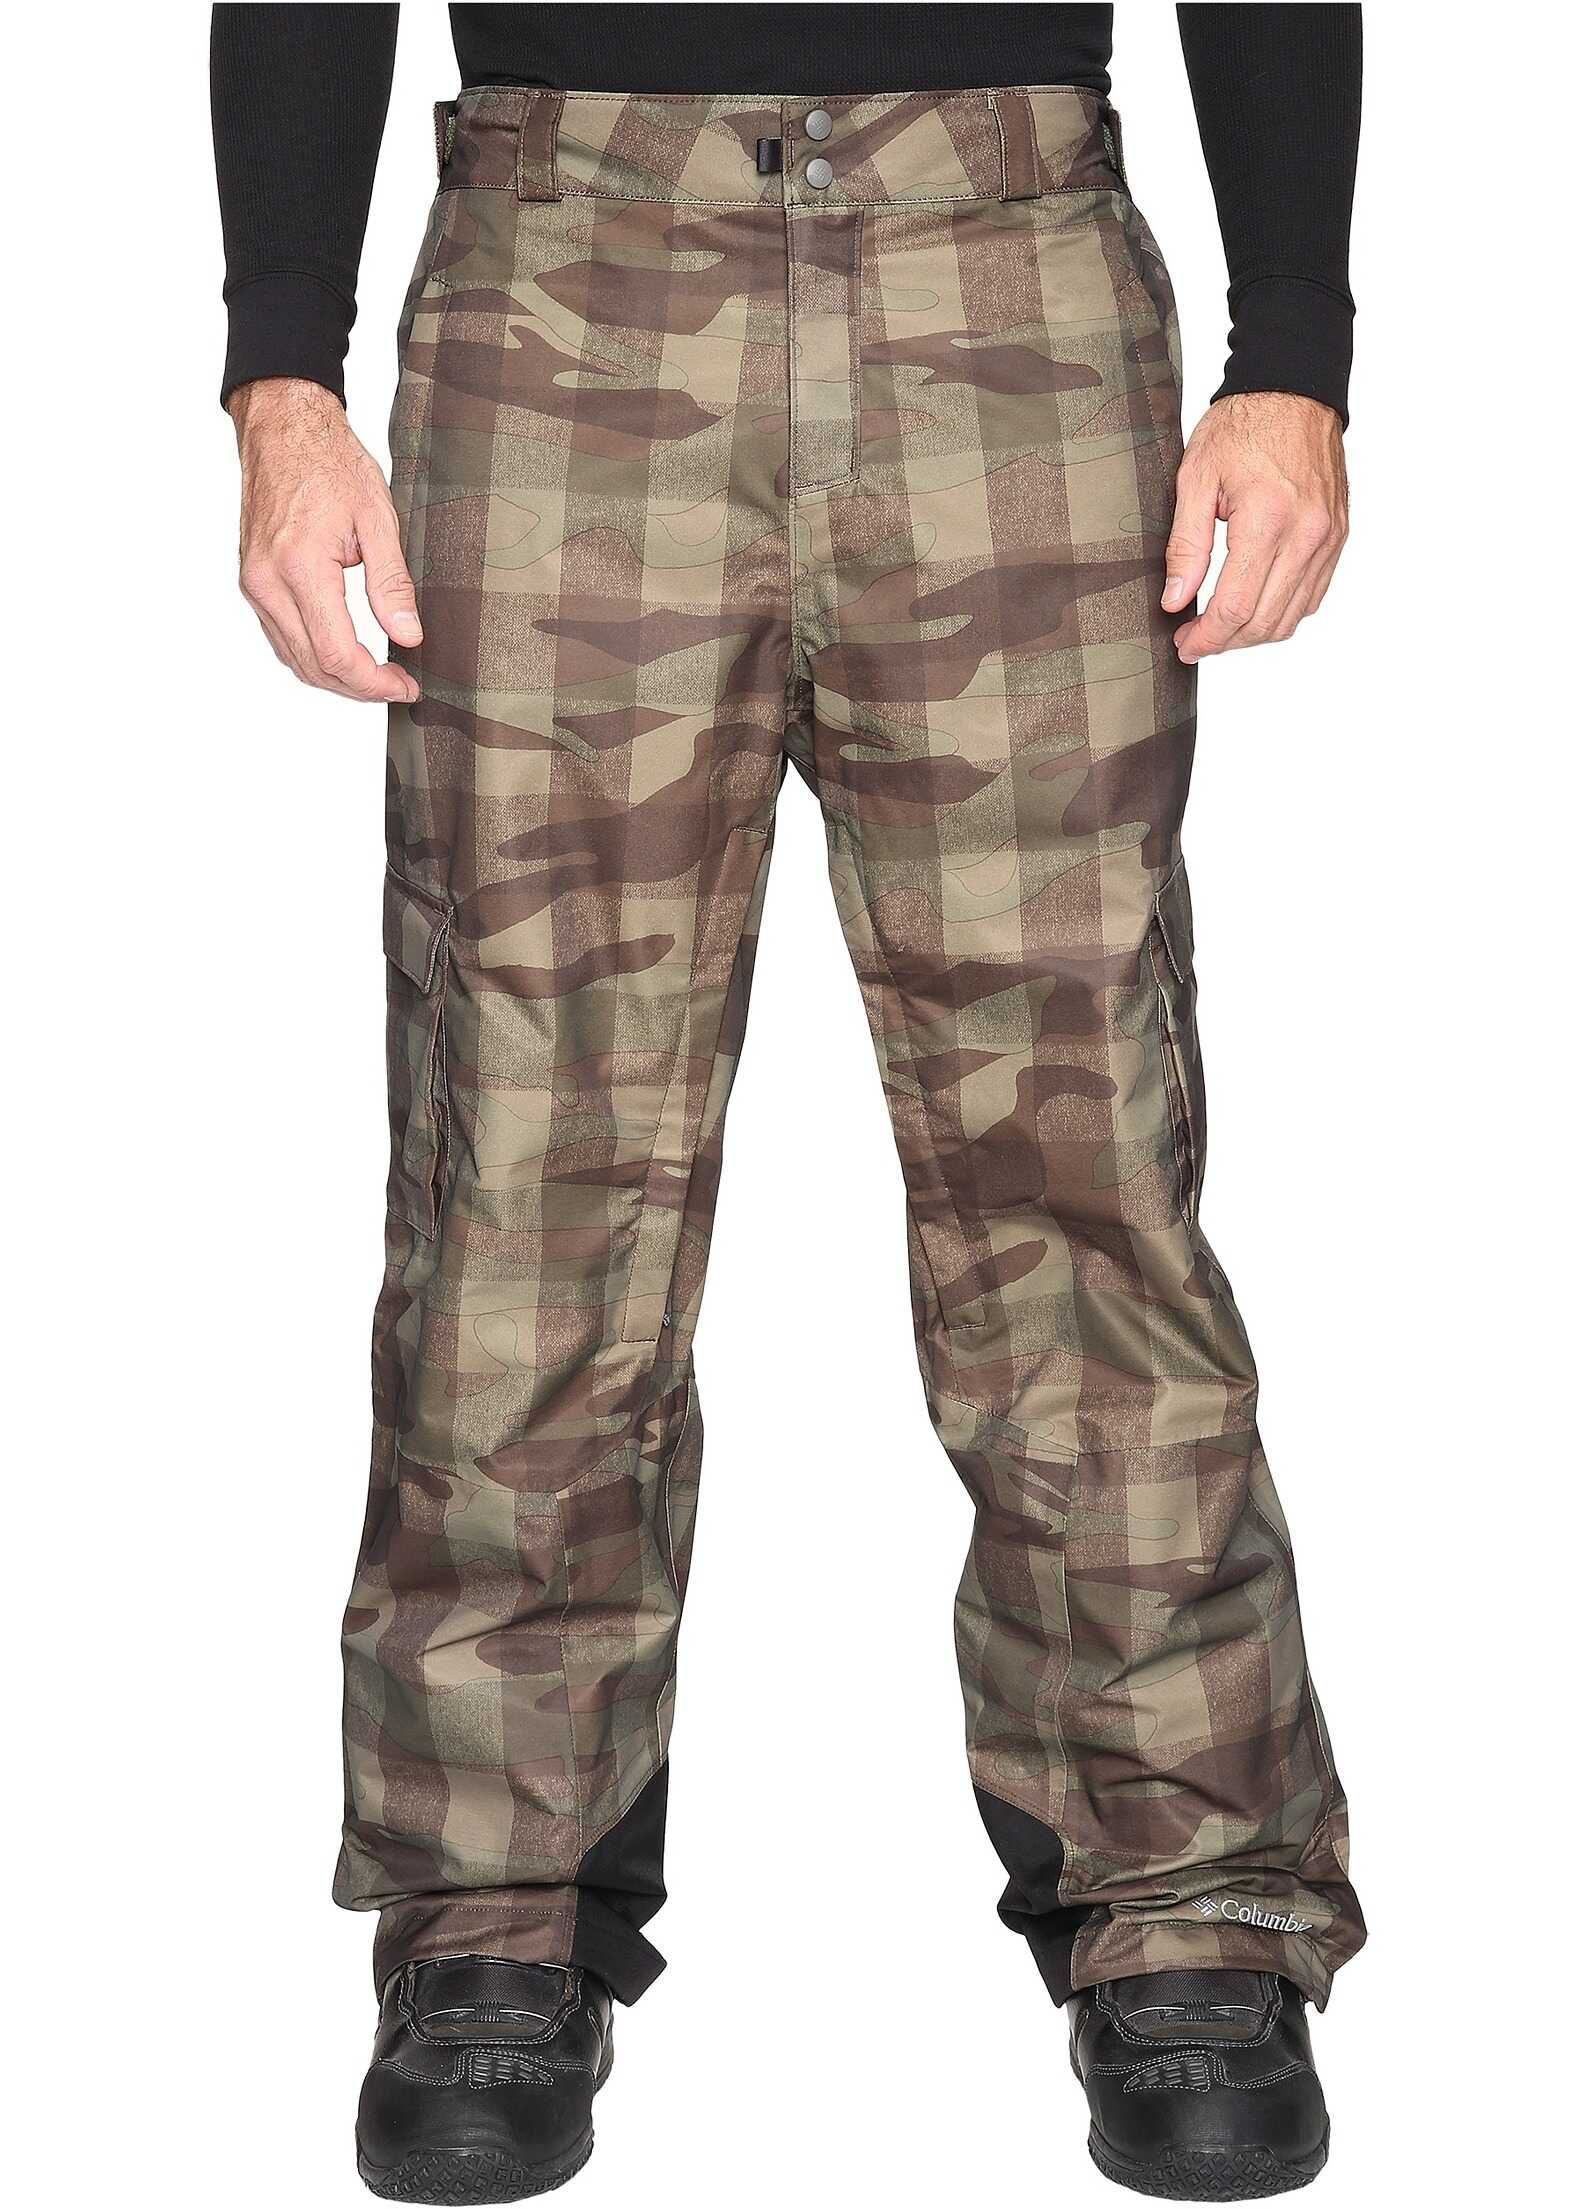 Columbia Big & Tall Ridge 2 Run™ II Pant Peatmoss Buffalo Camo